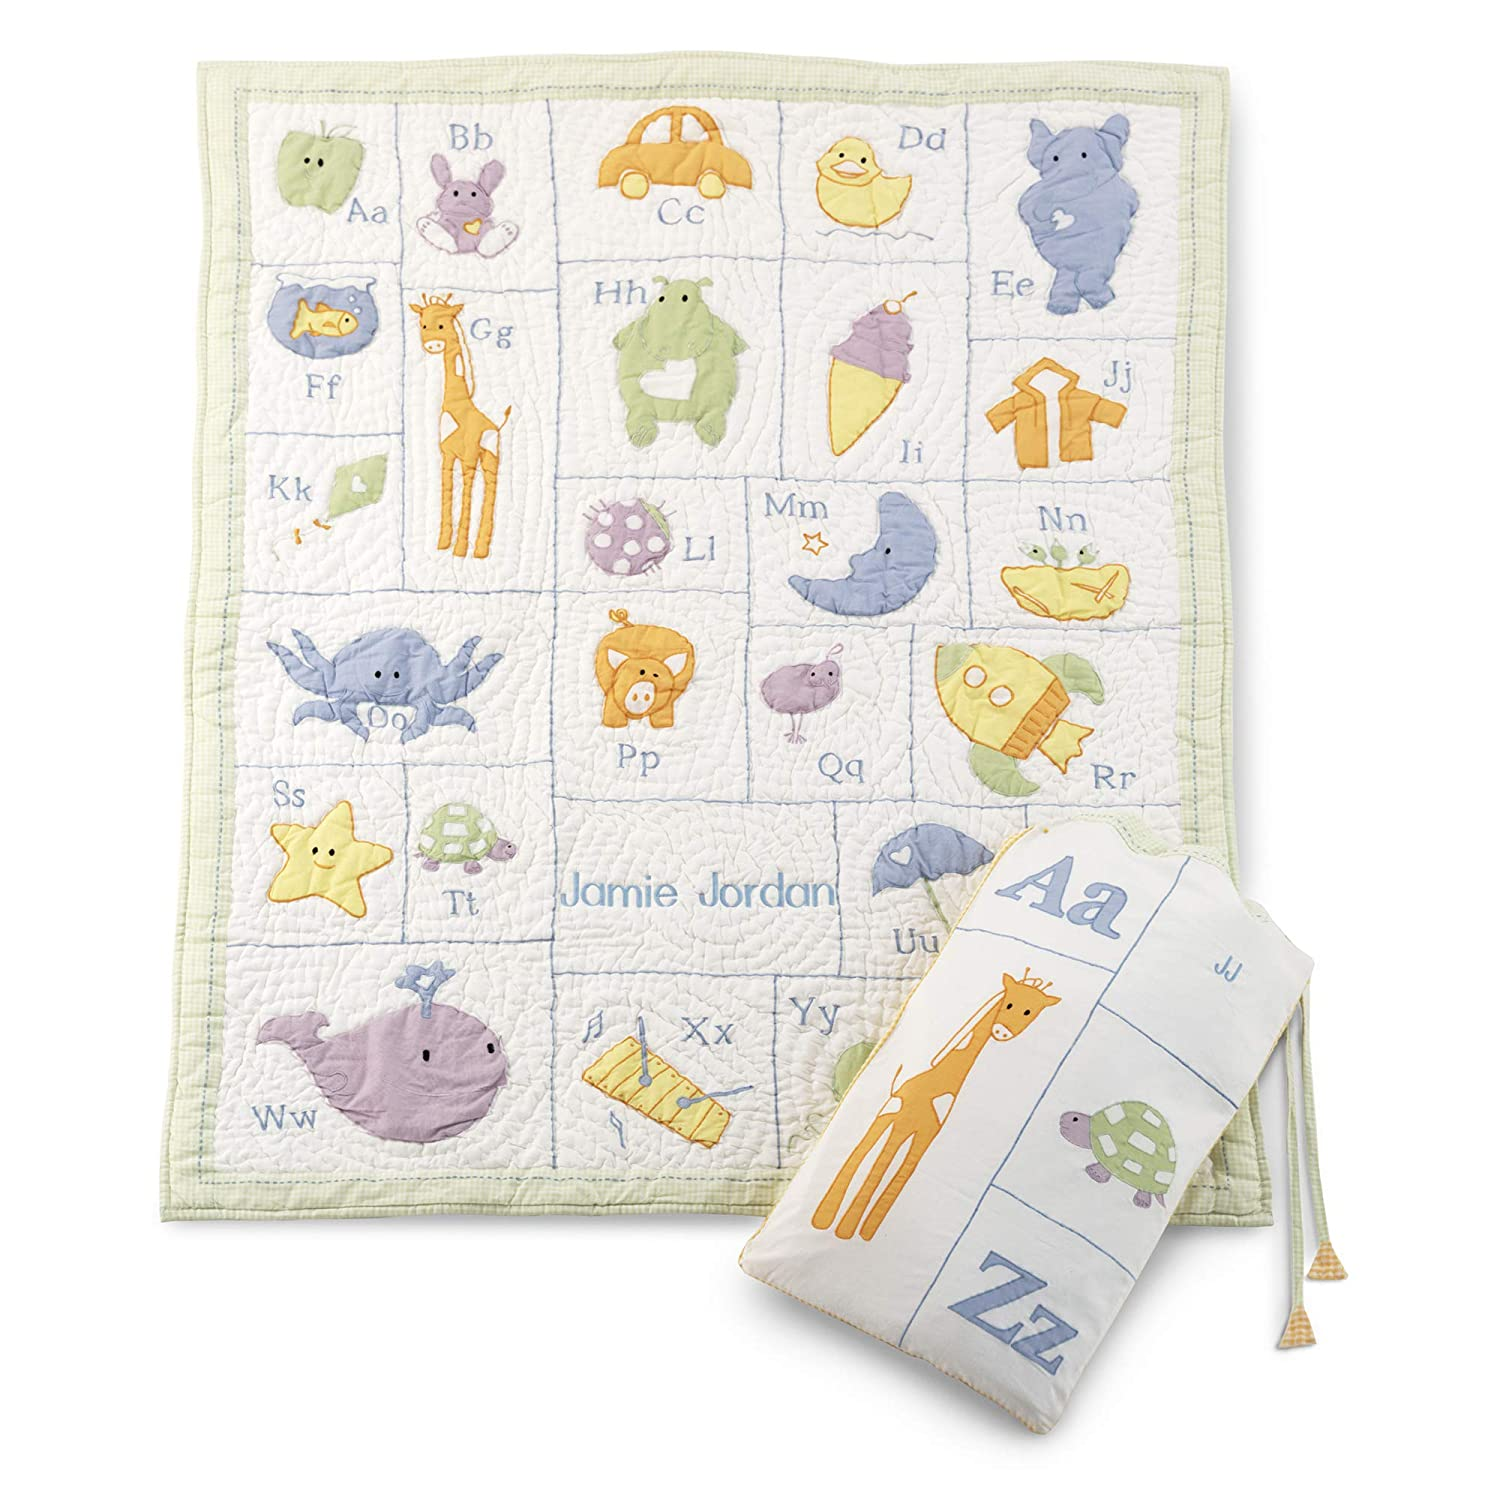 Things Remembered Personalized Alphabet Quilt with Embroidery Included